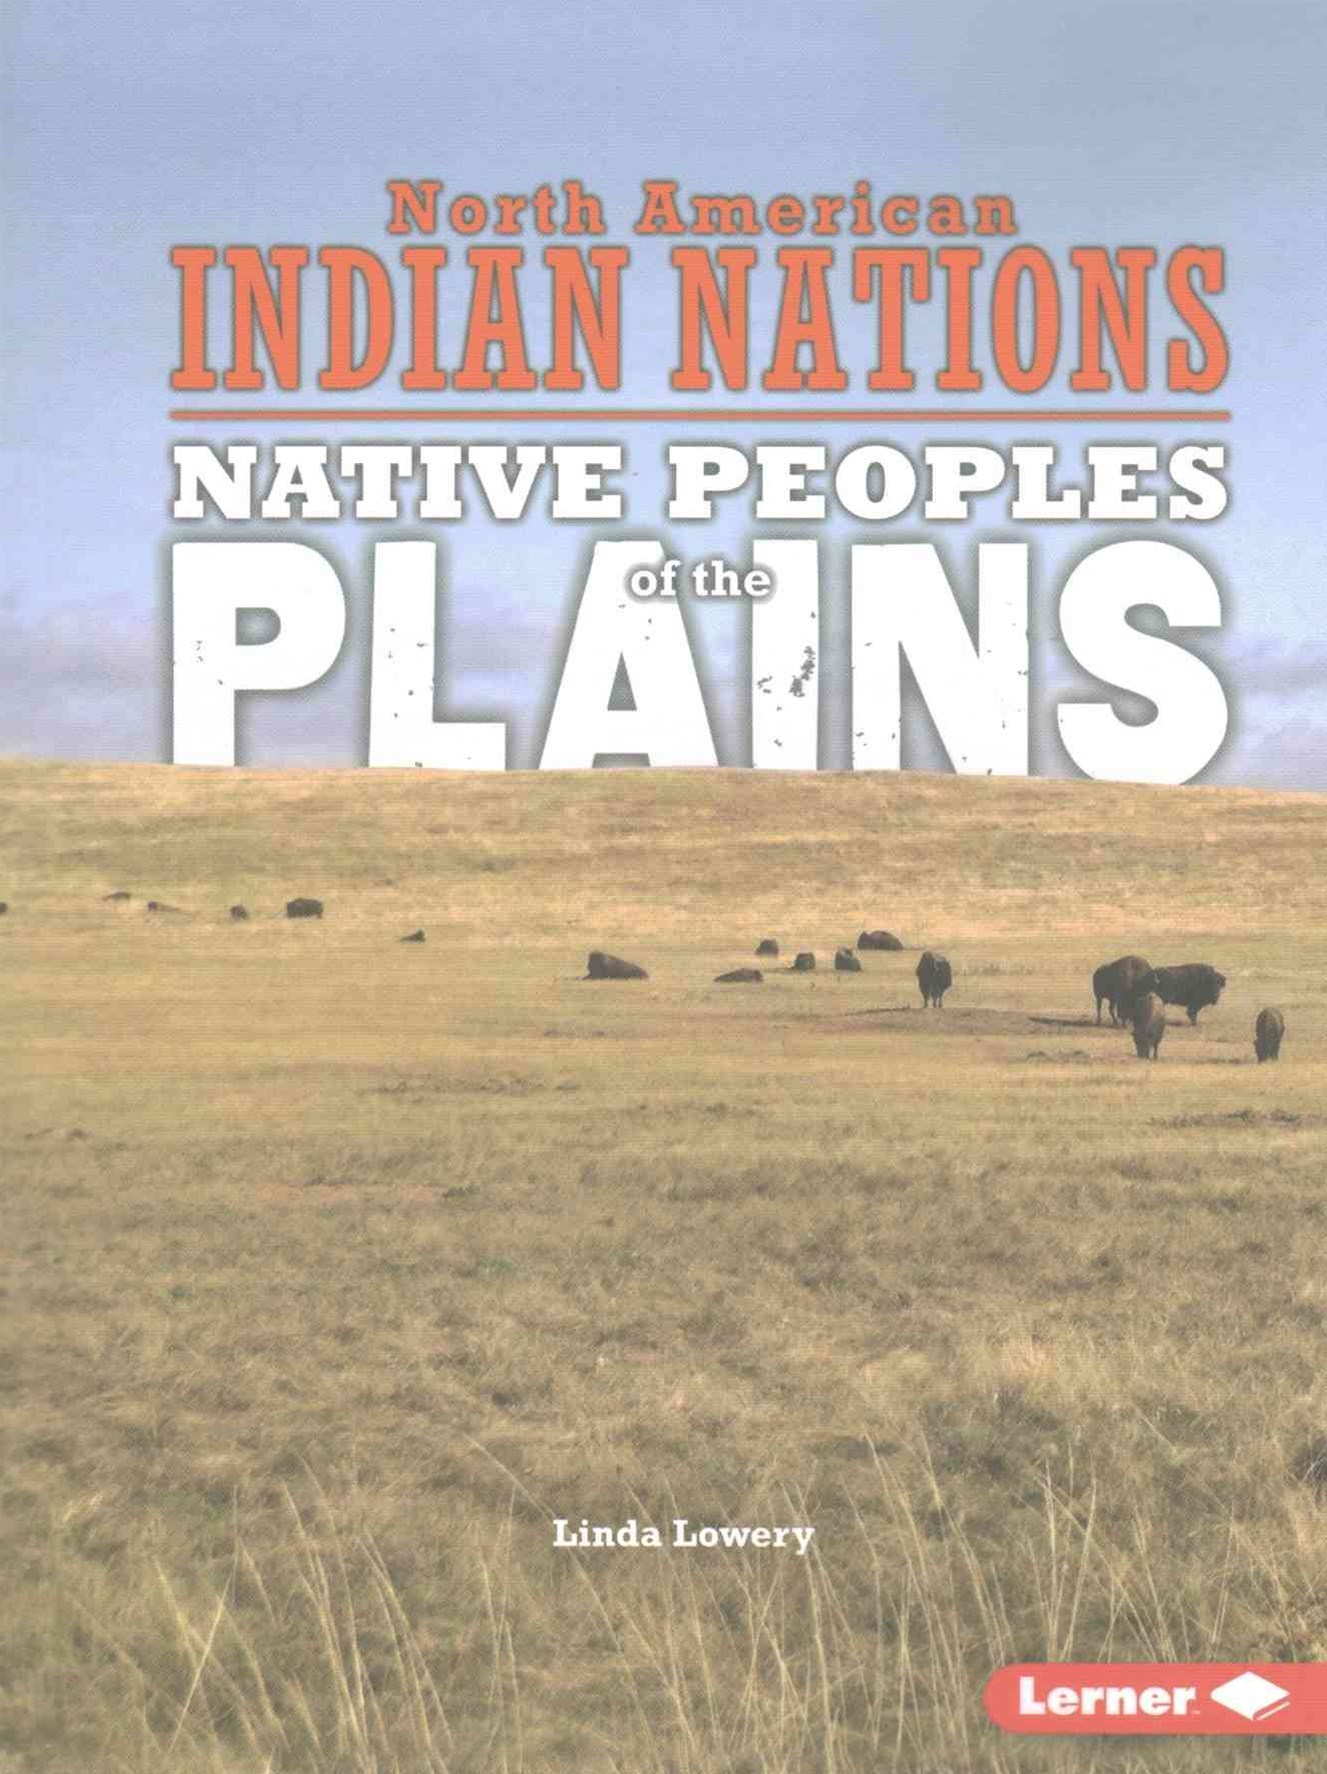 Plains - Native Peoples - North American Indian Nations